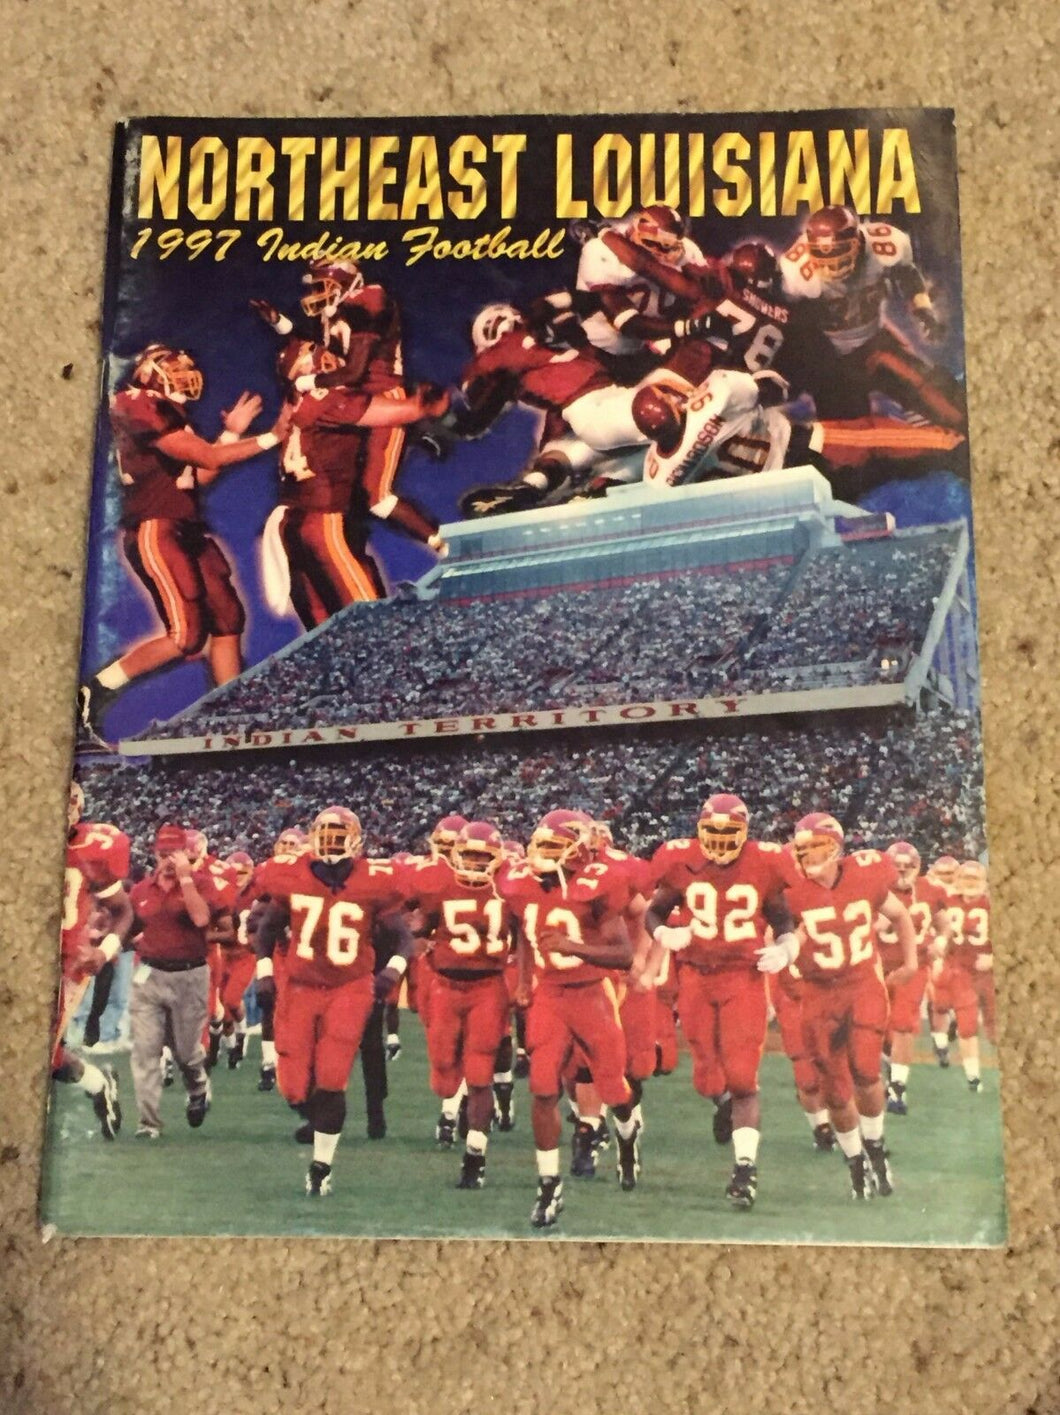 1997 NORTHEAST LOUISIANA INDIANS COLLEGE FOOTBALL MEDIA GUIDE b6